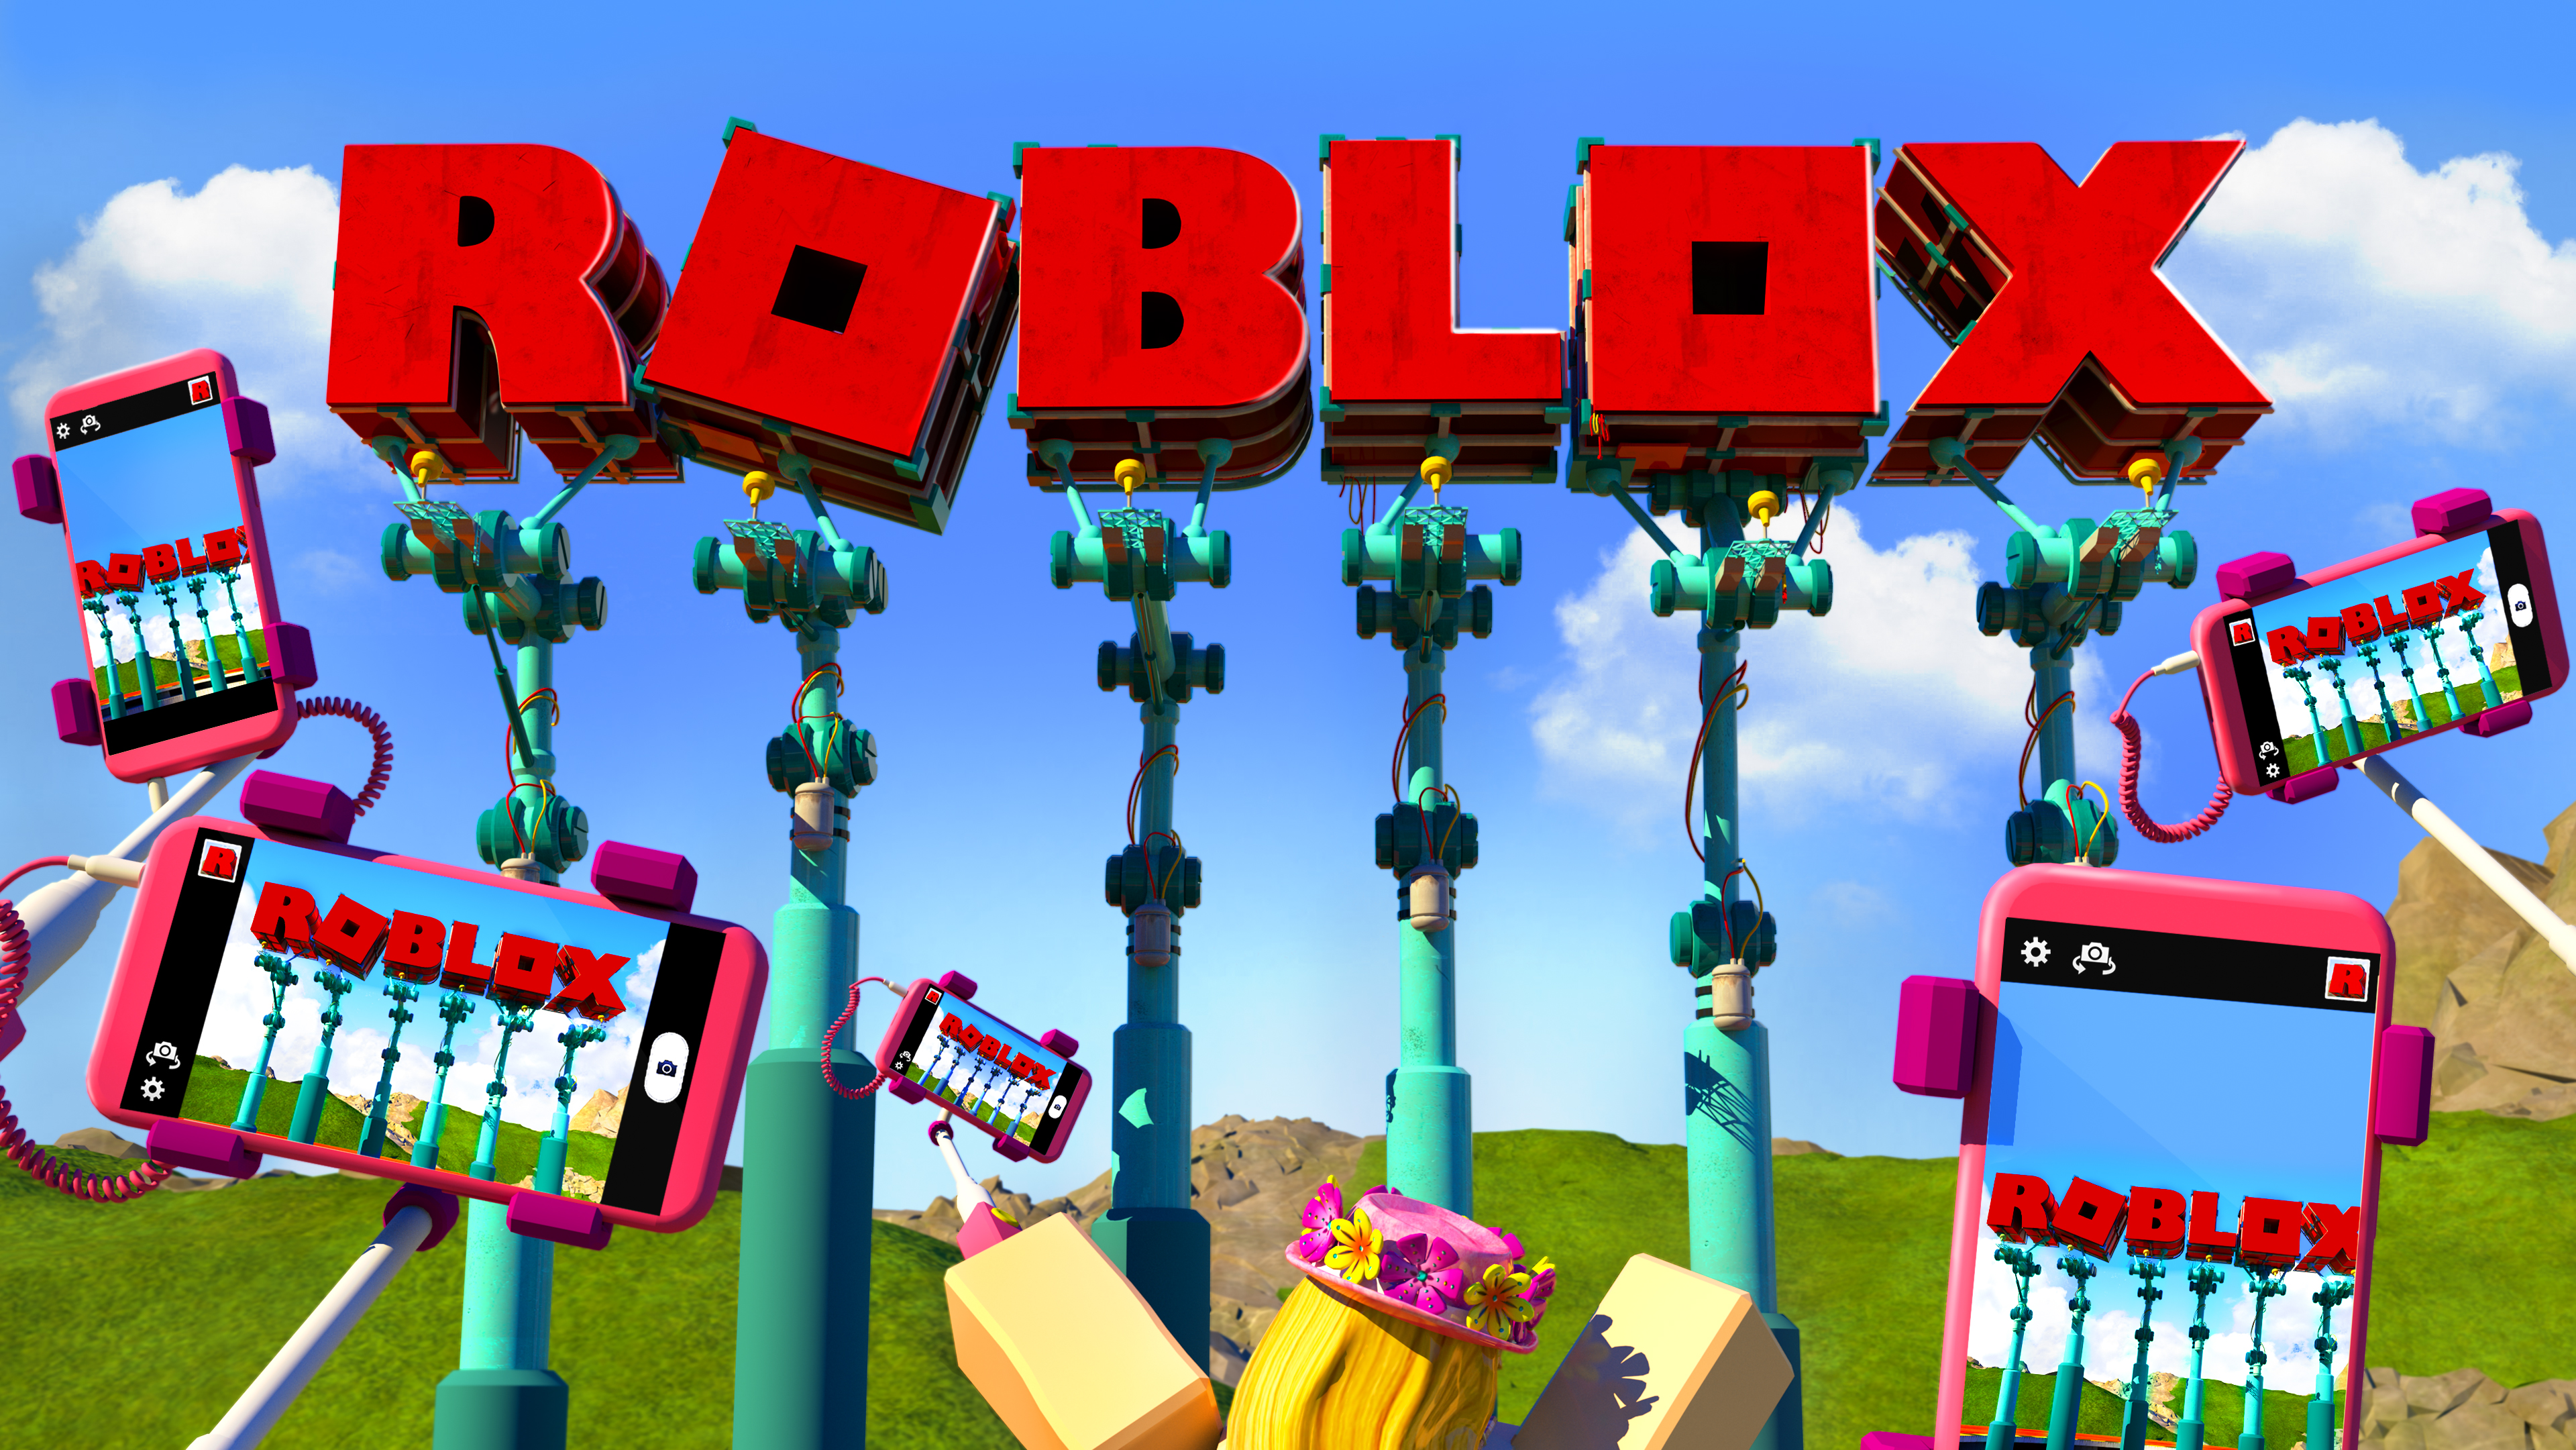 Roblox 2017 Free Download  Everydownload-7619